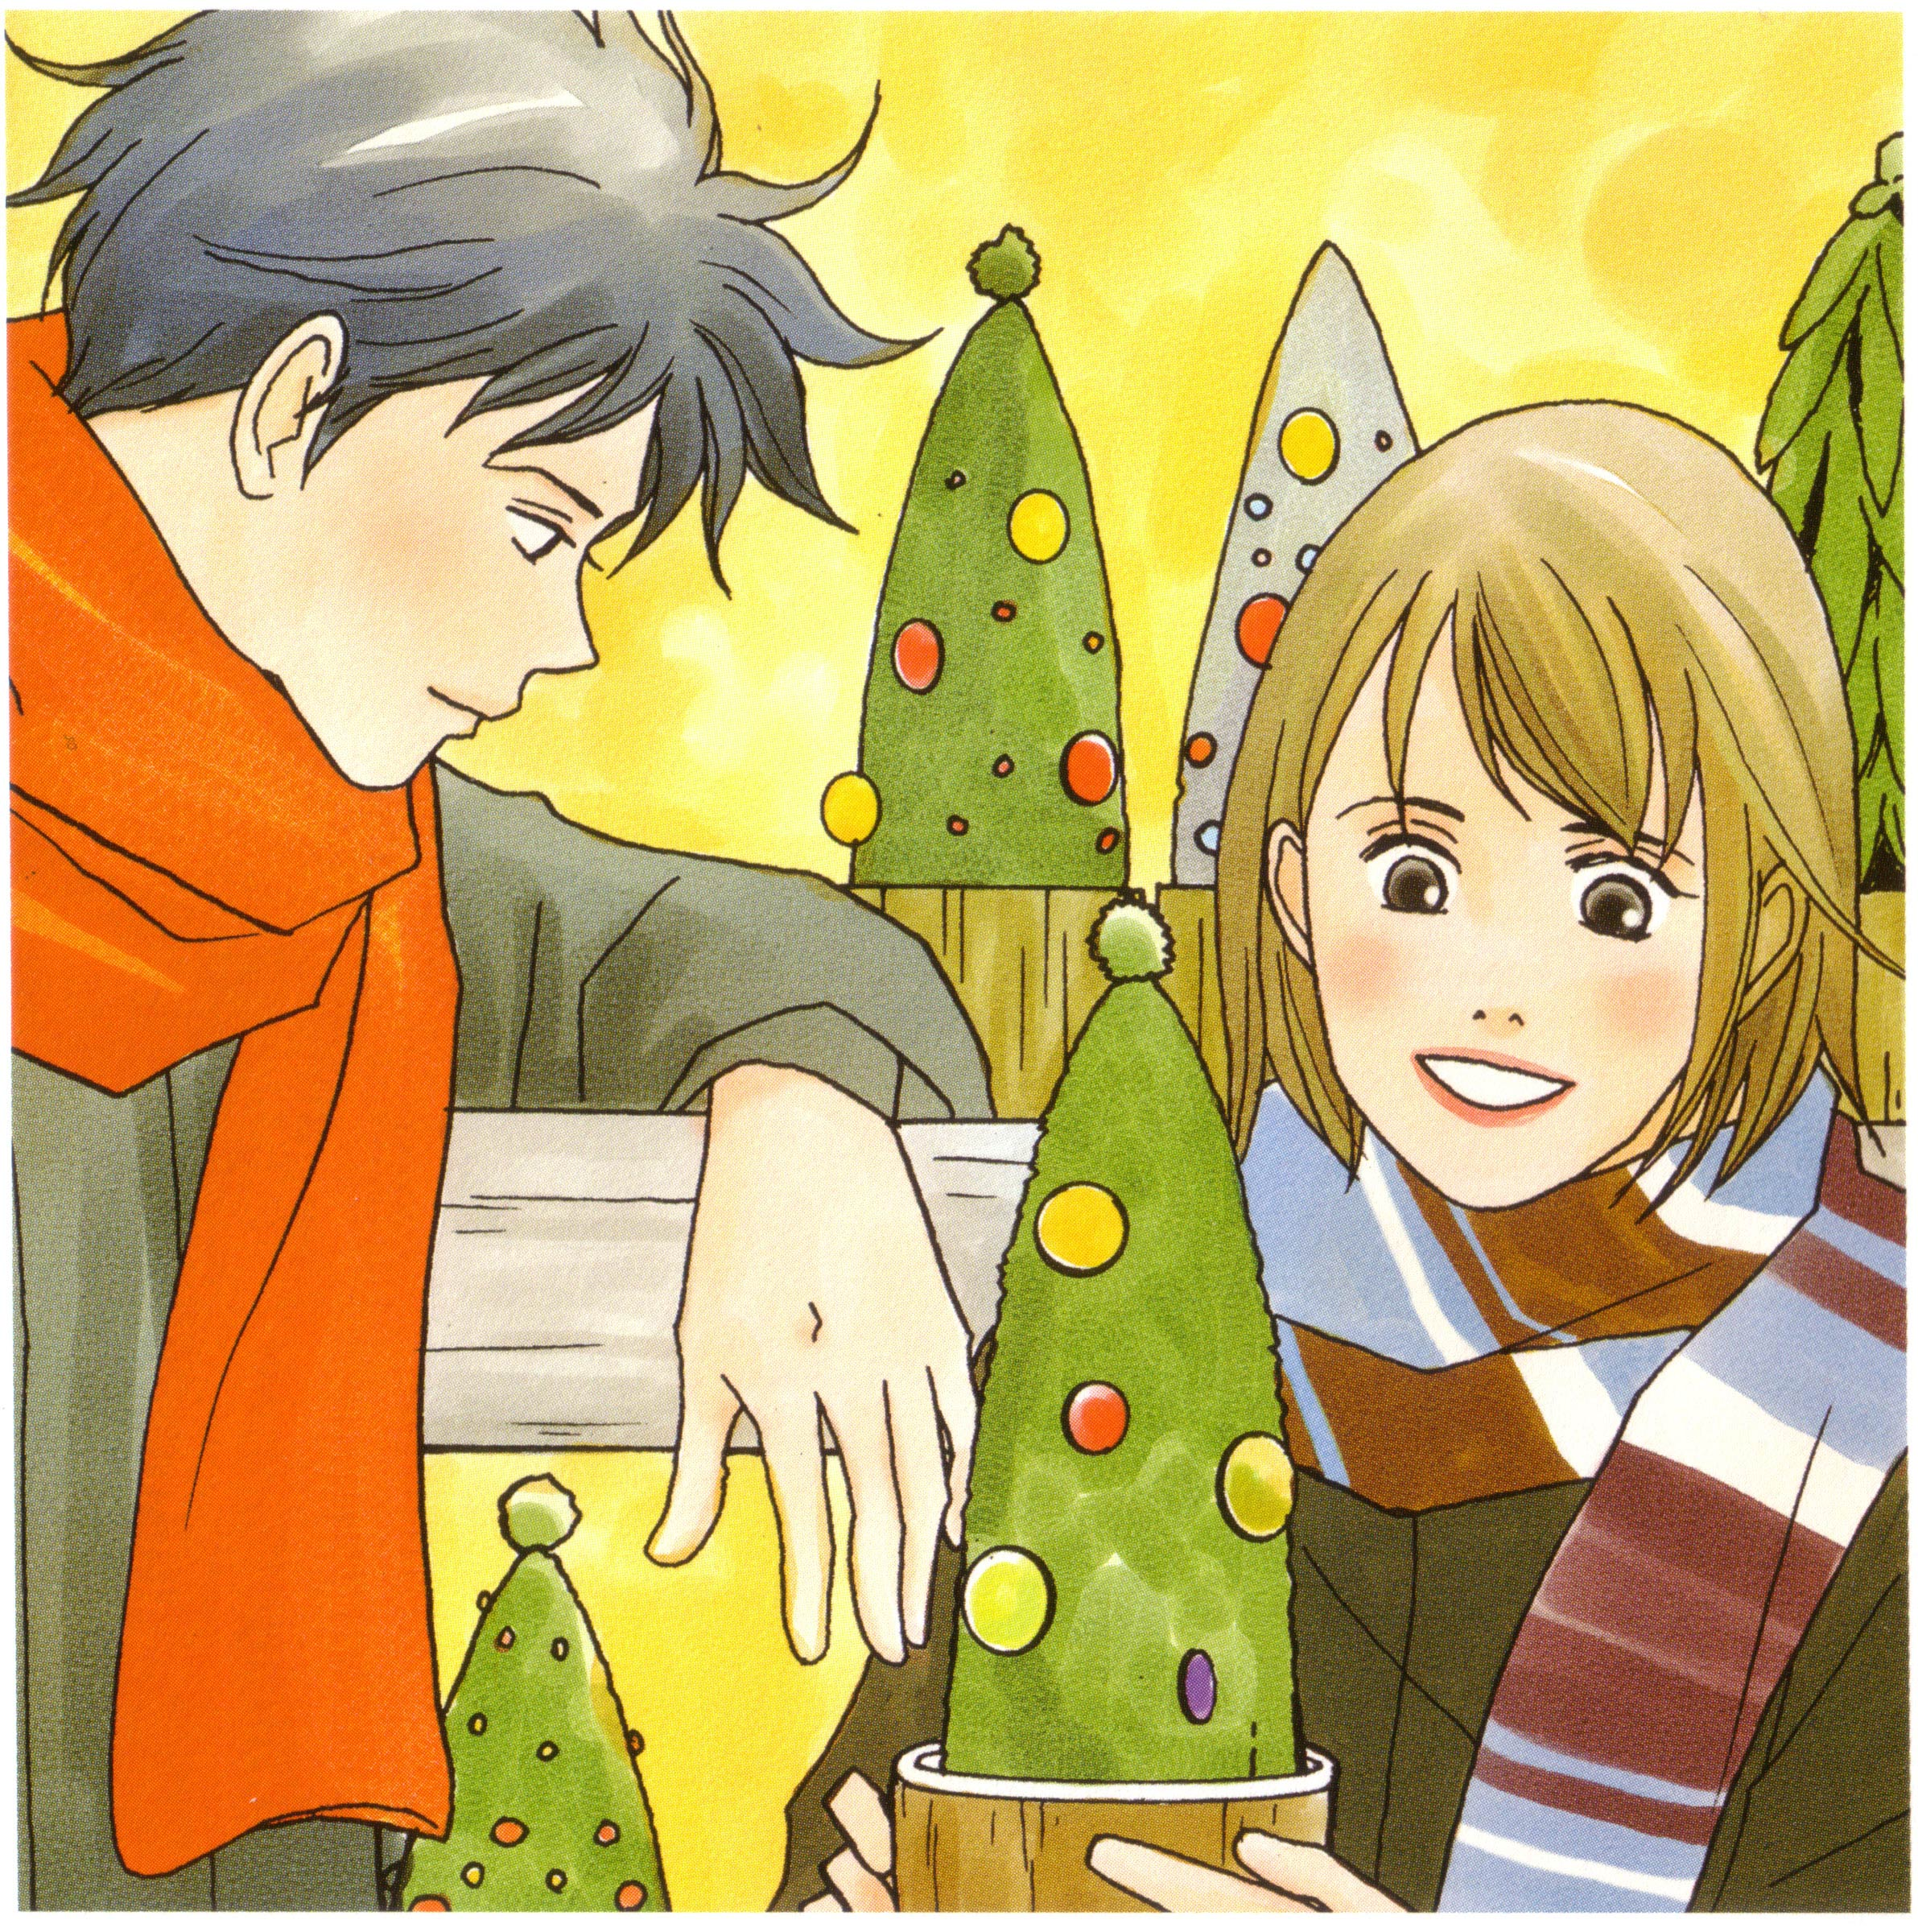 Nodame Cantabile Nodame Vol 13: Nodame Cantabile: Nodame Cantabile Selection CD Book Pg 26